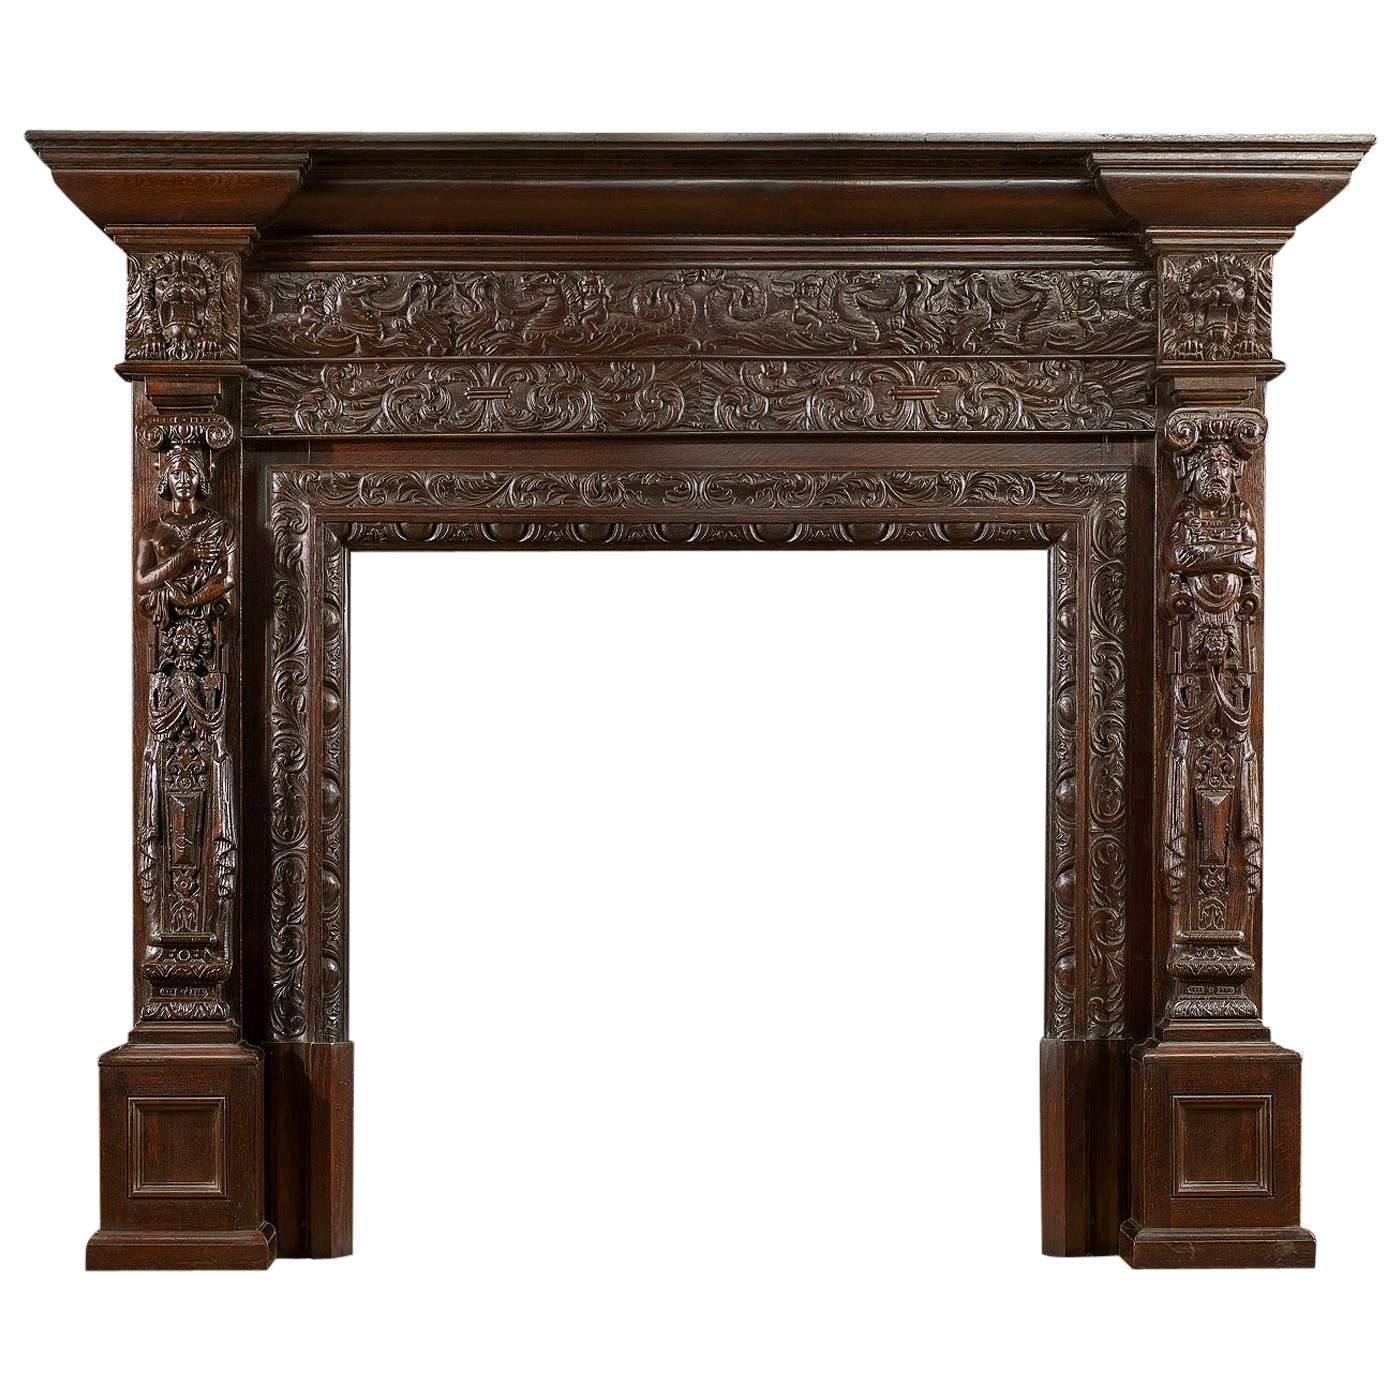 large english jacobean style carved oak antique fireplace